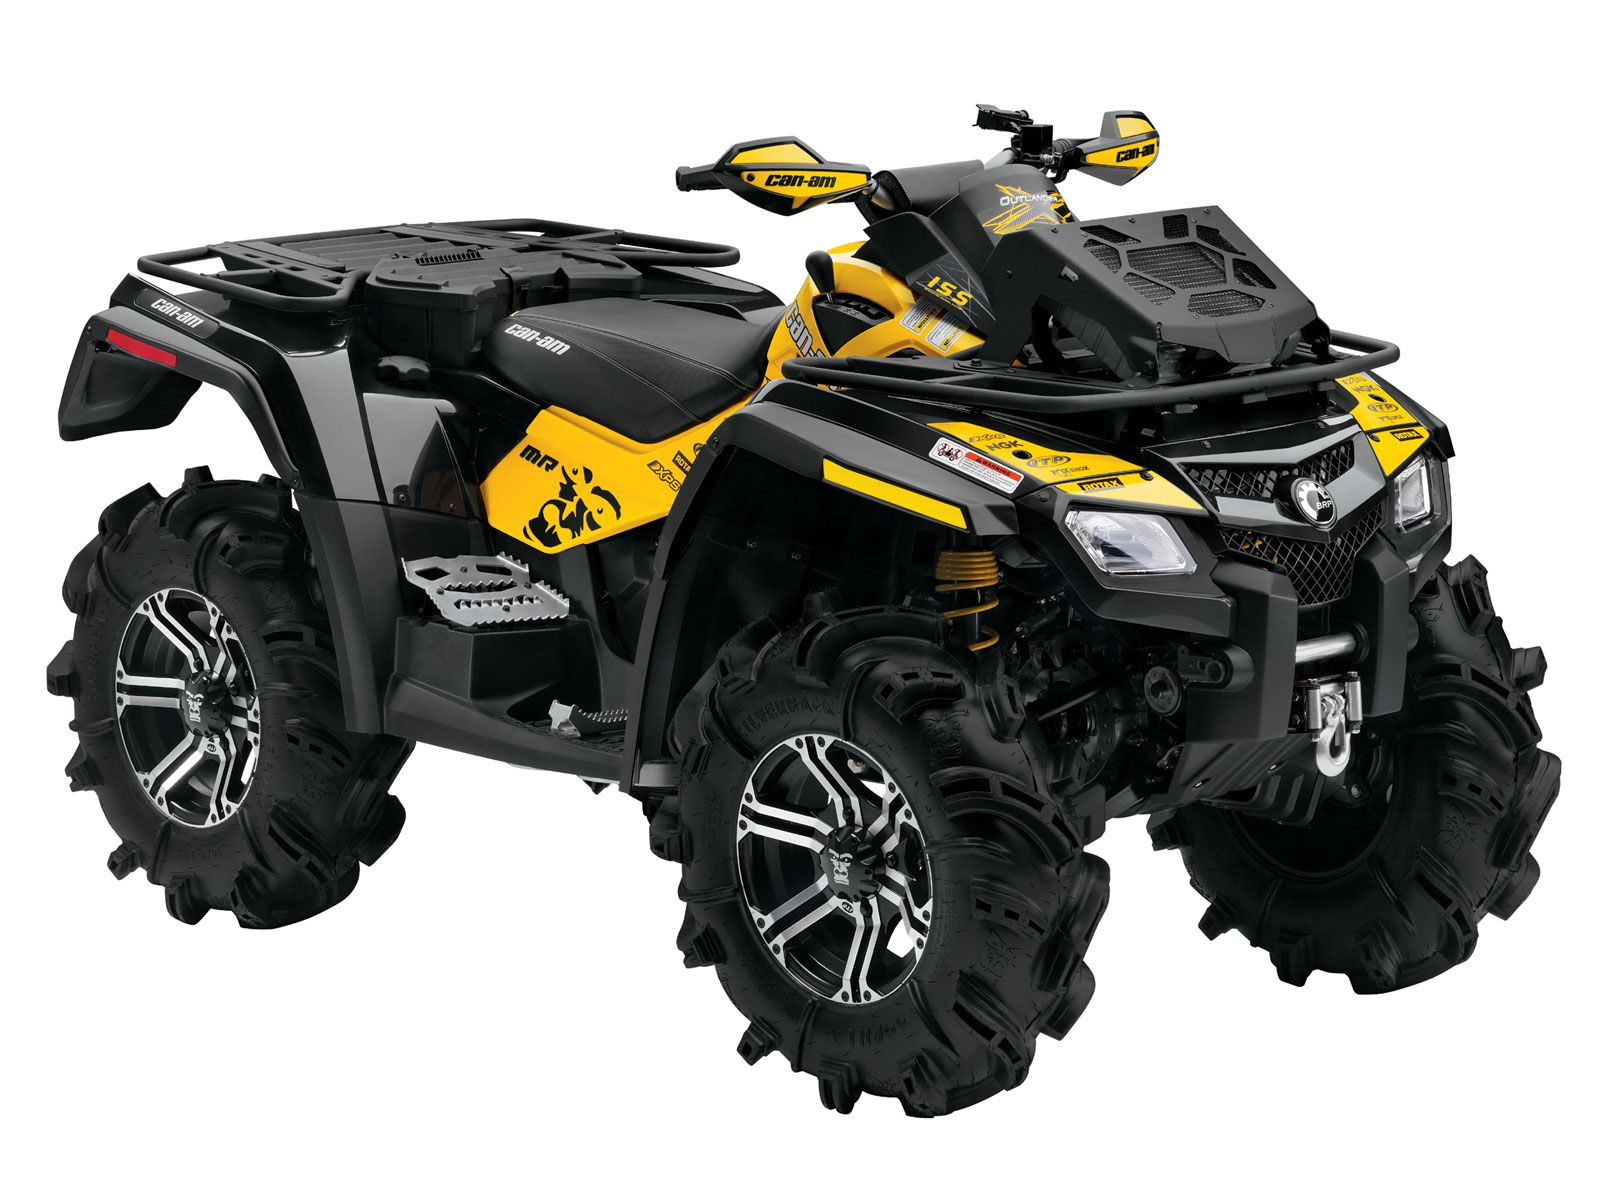 Can am outlander x mr the wheels pulled me in but it looks like the right atv to attach the snow plow to